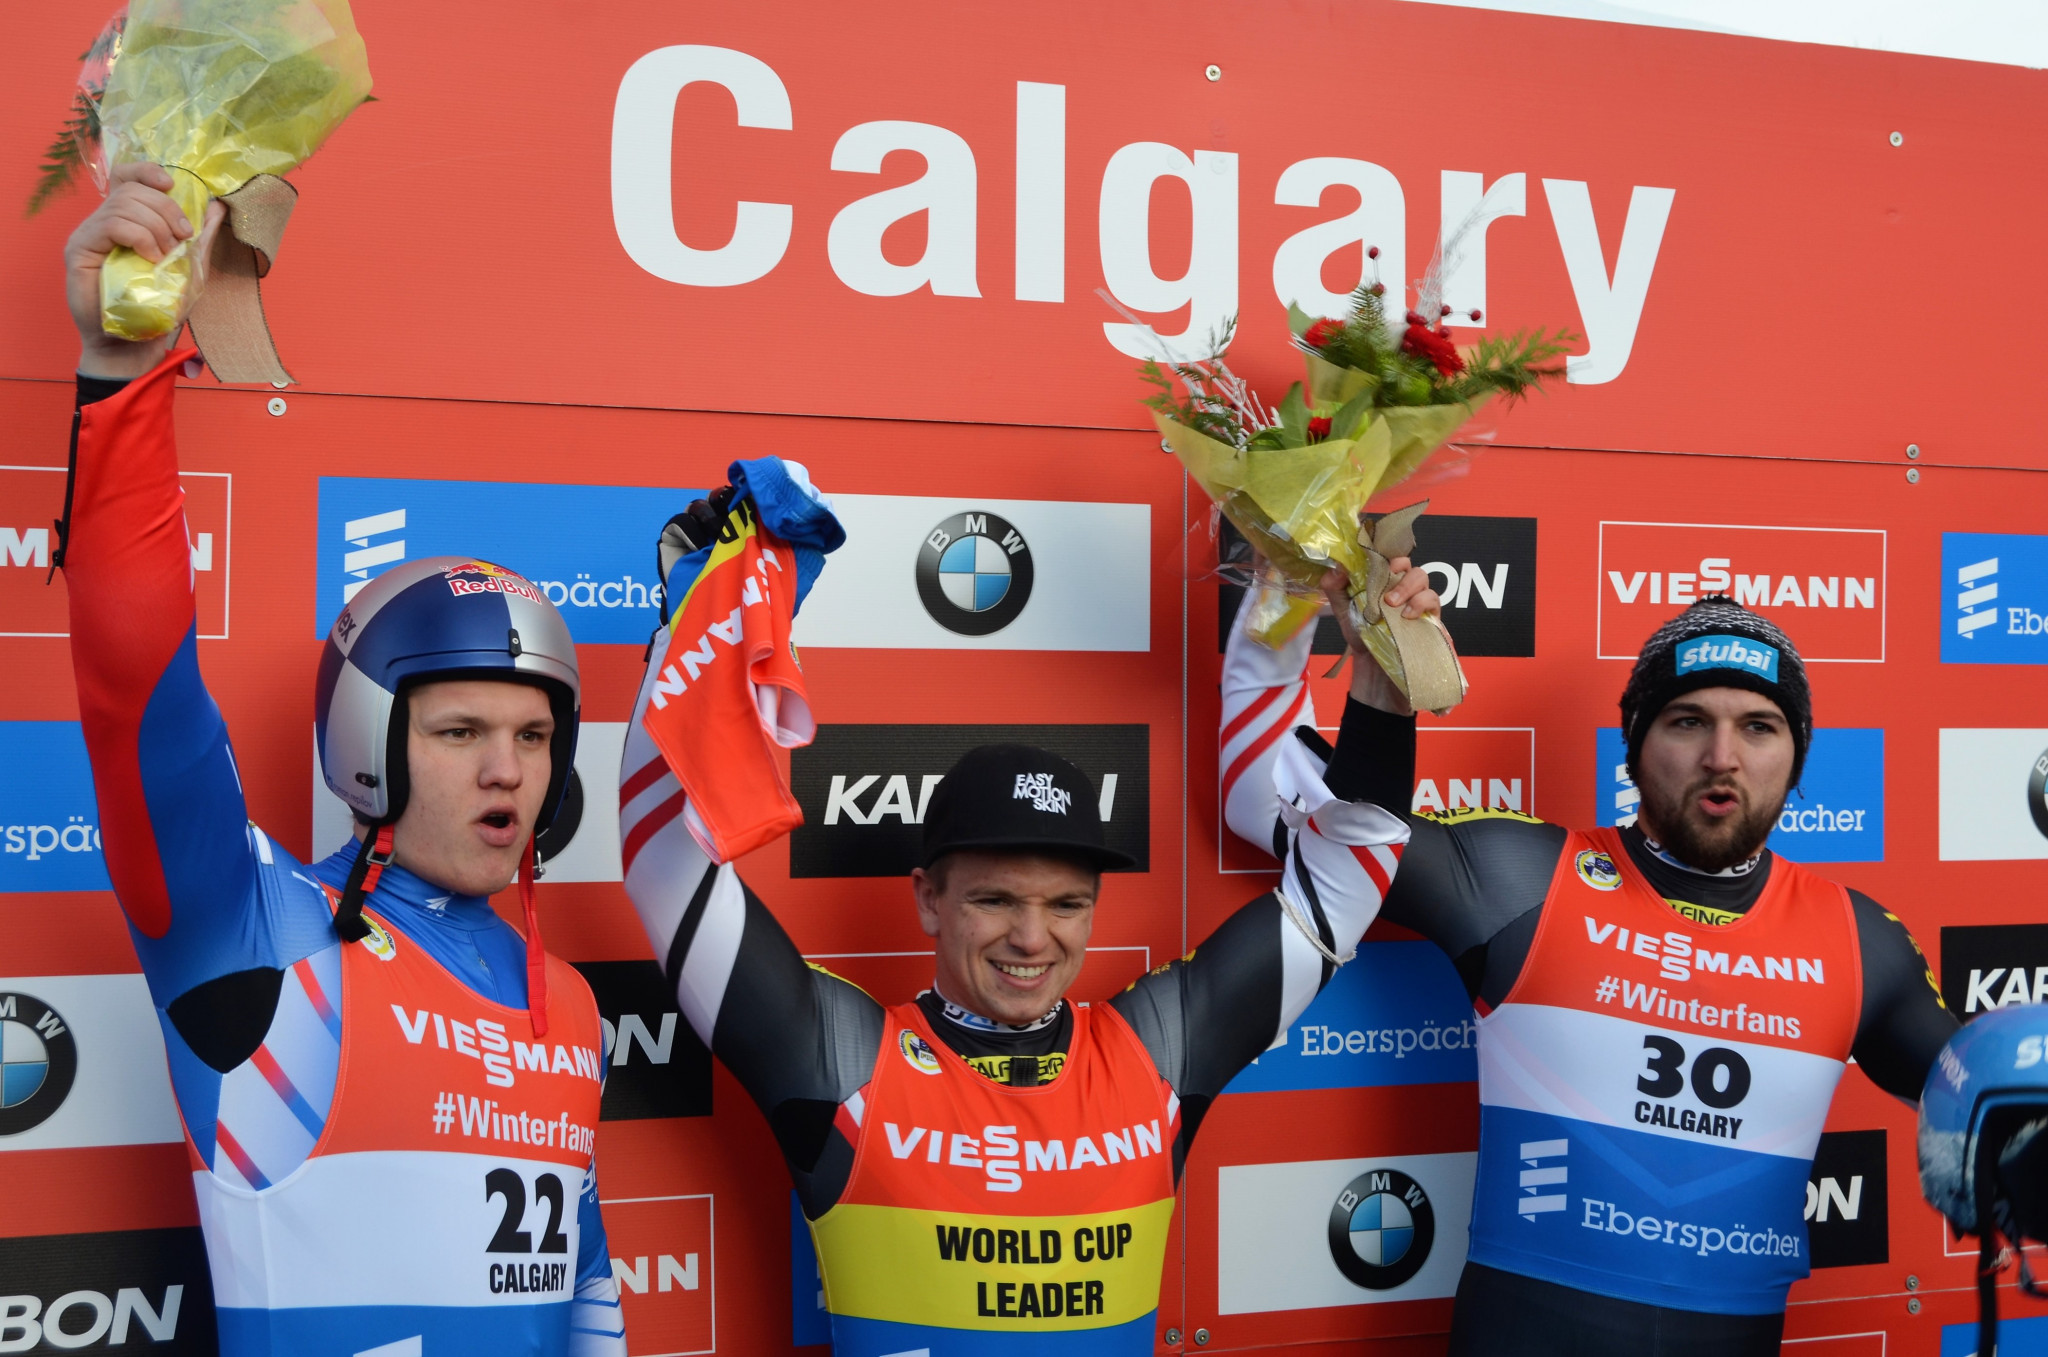 Kindl shines again at Luge World Cup in Calgary